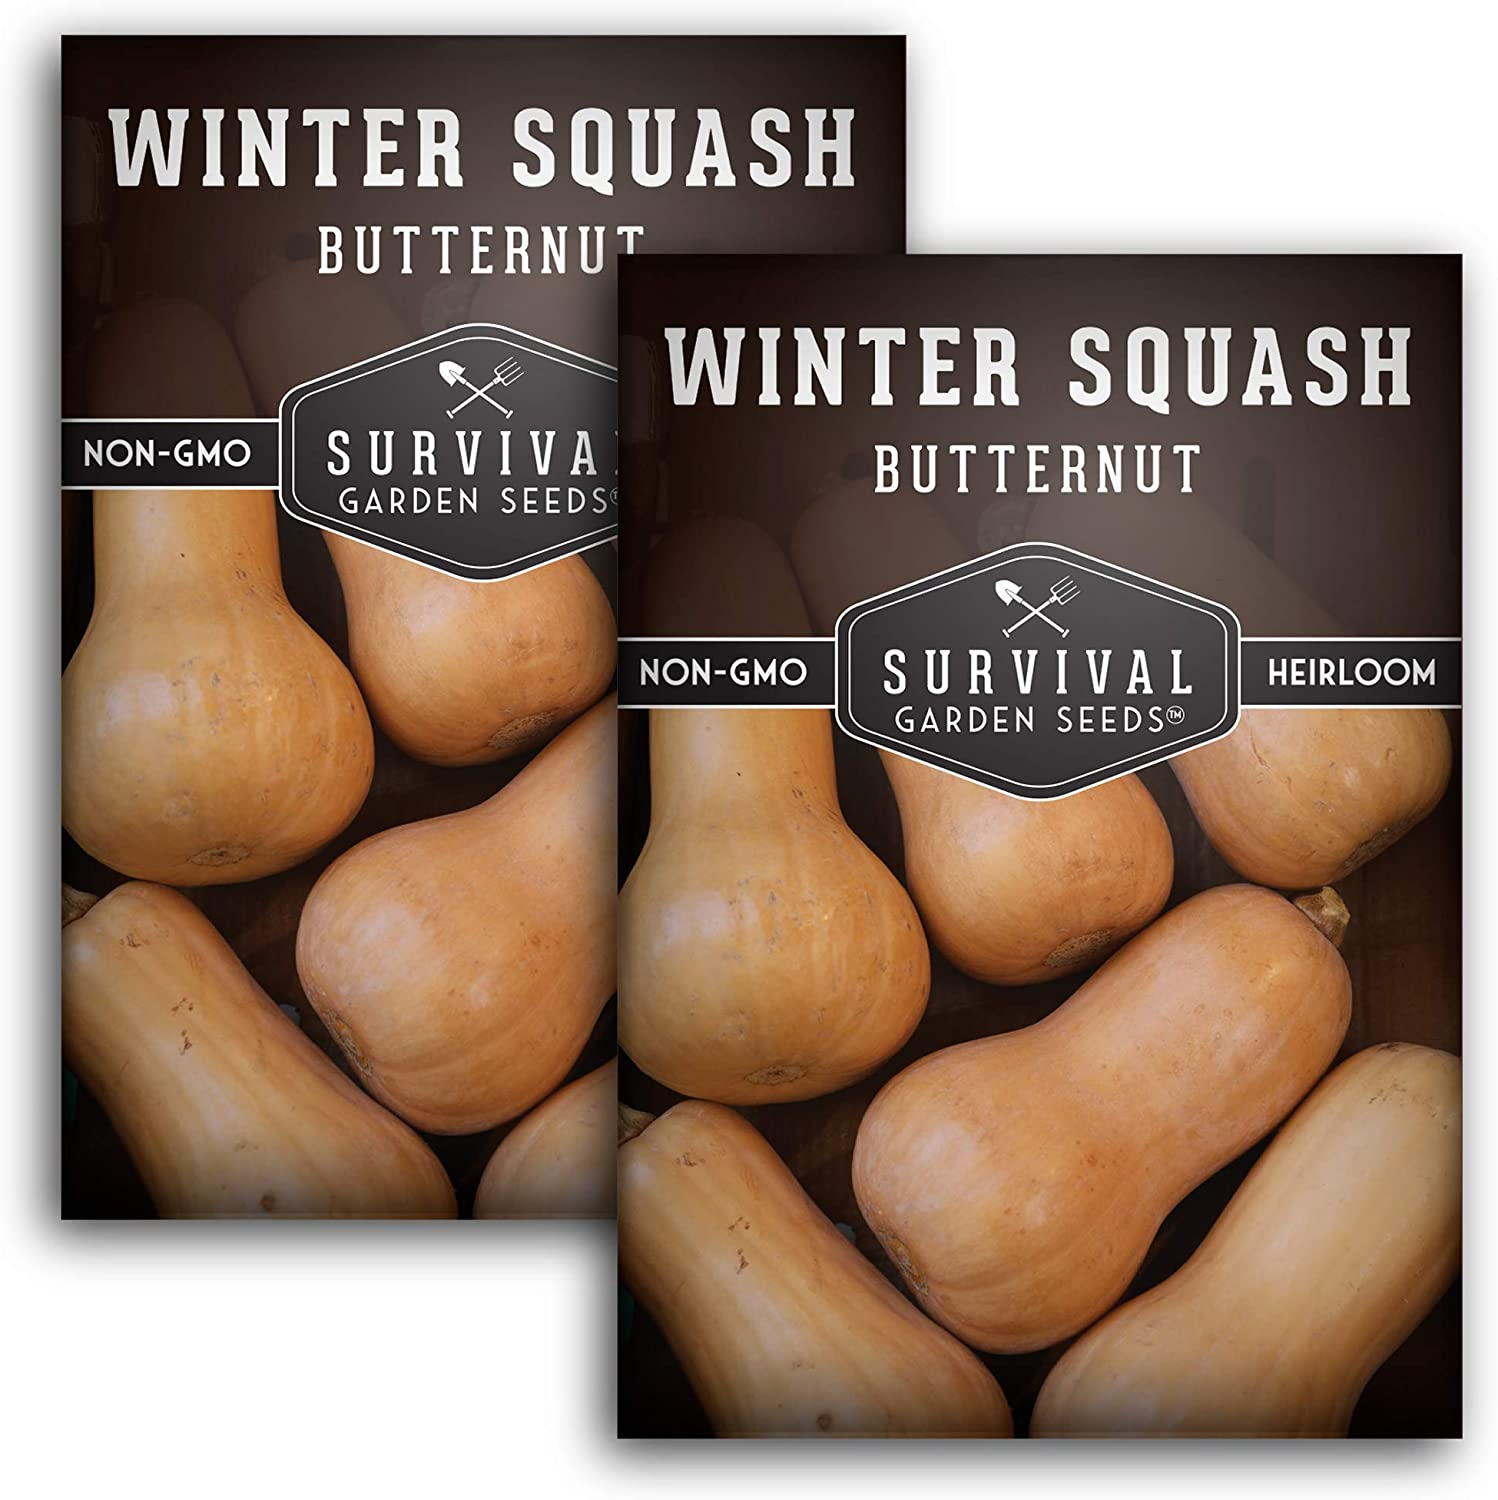 Survival Garden Seeds - Butternut Squash Seed for Planting - Packet with Instructions to Plant and Grow in Your Home Vegetable Garden - Non-GMO Heirloom Variety